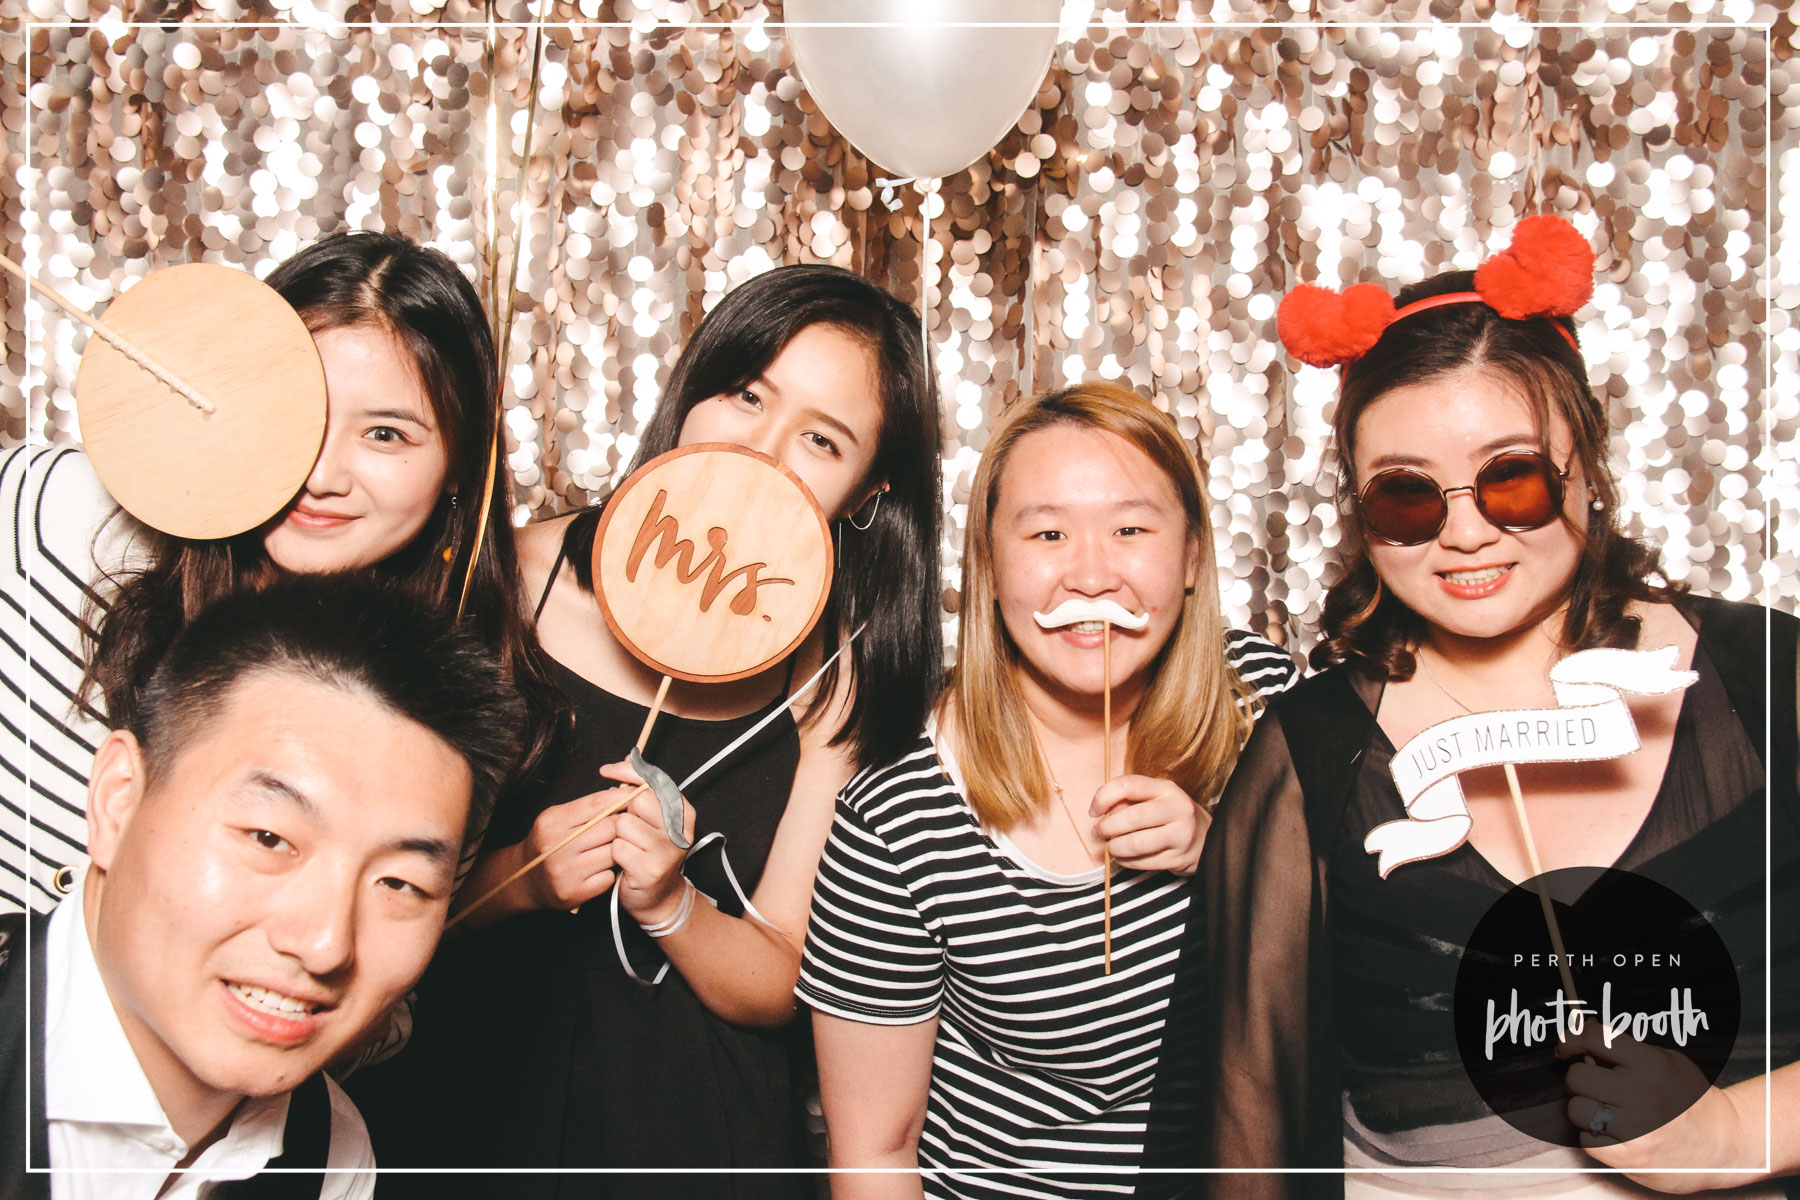 Chengxi + Xin's Wedding - PASSWORD: PROVIDED ON THE Night- ALL LOWERCASE -